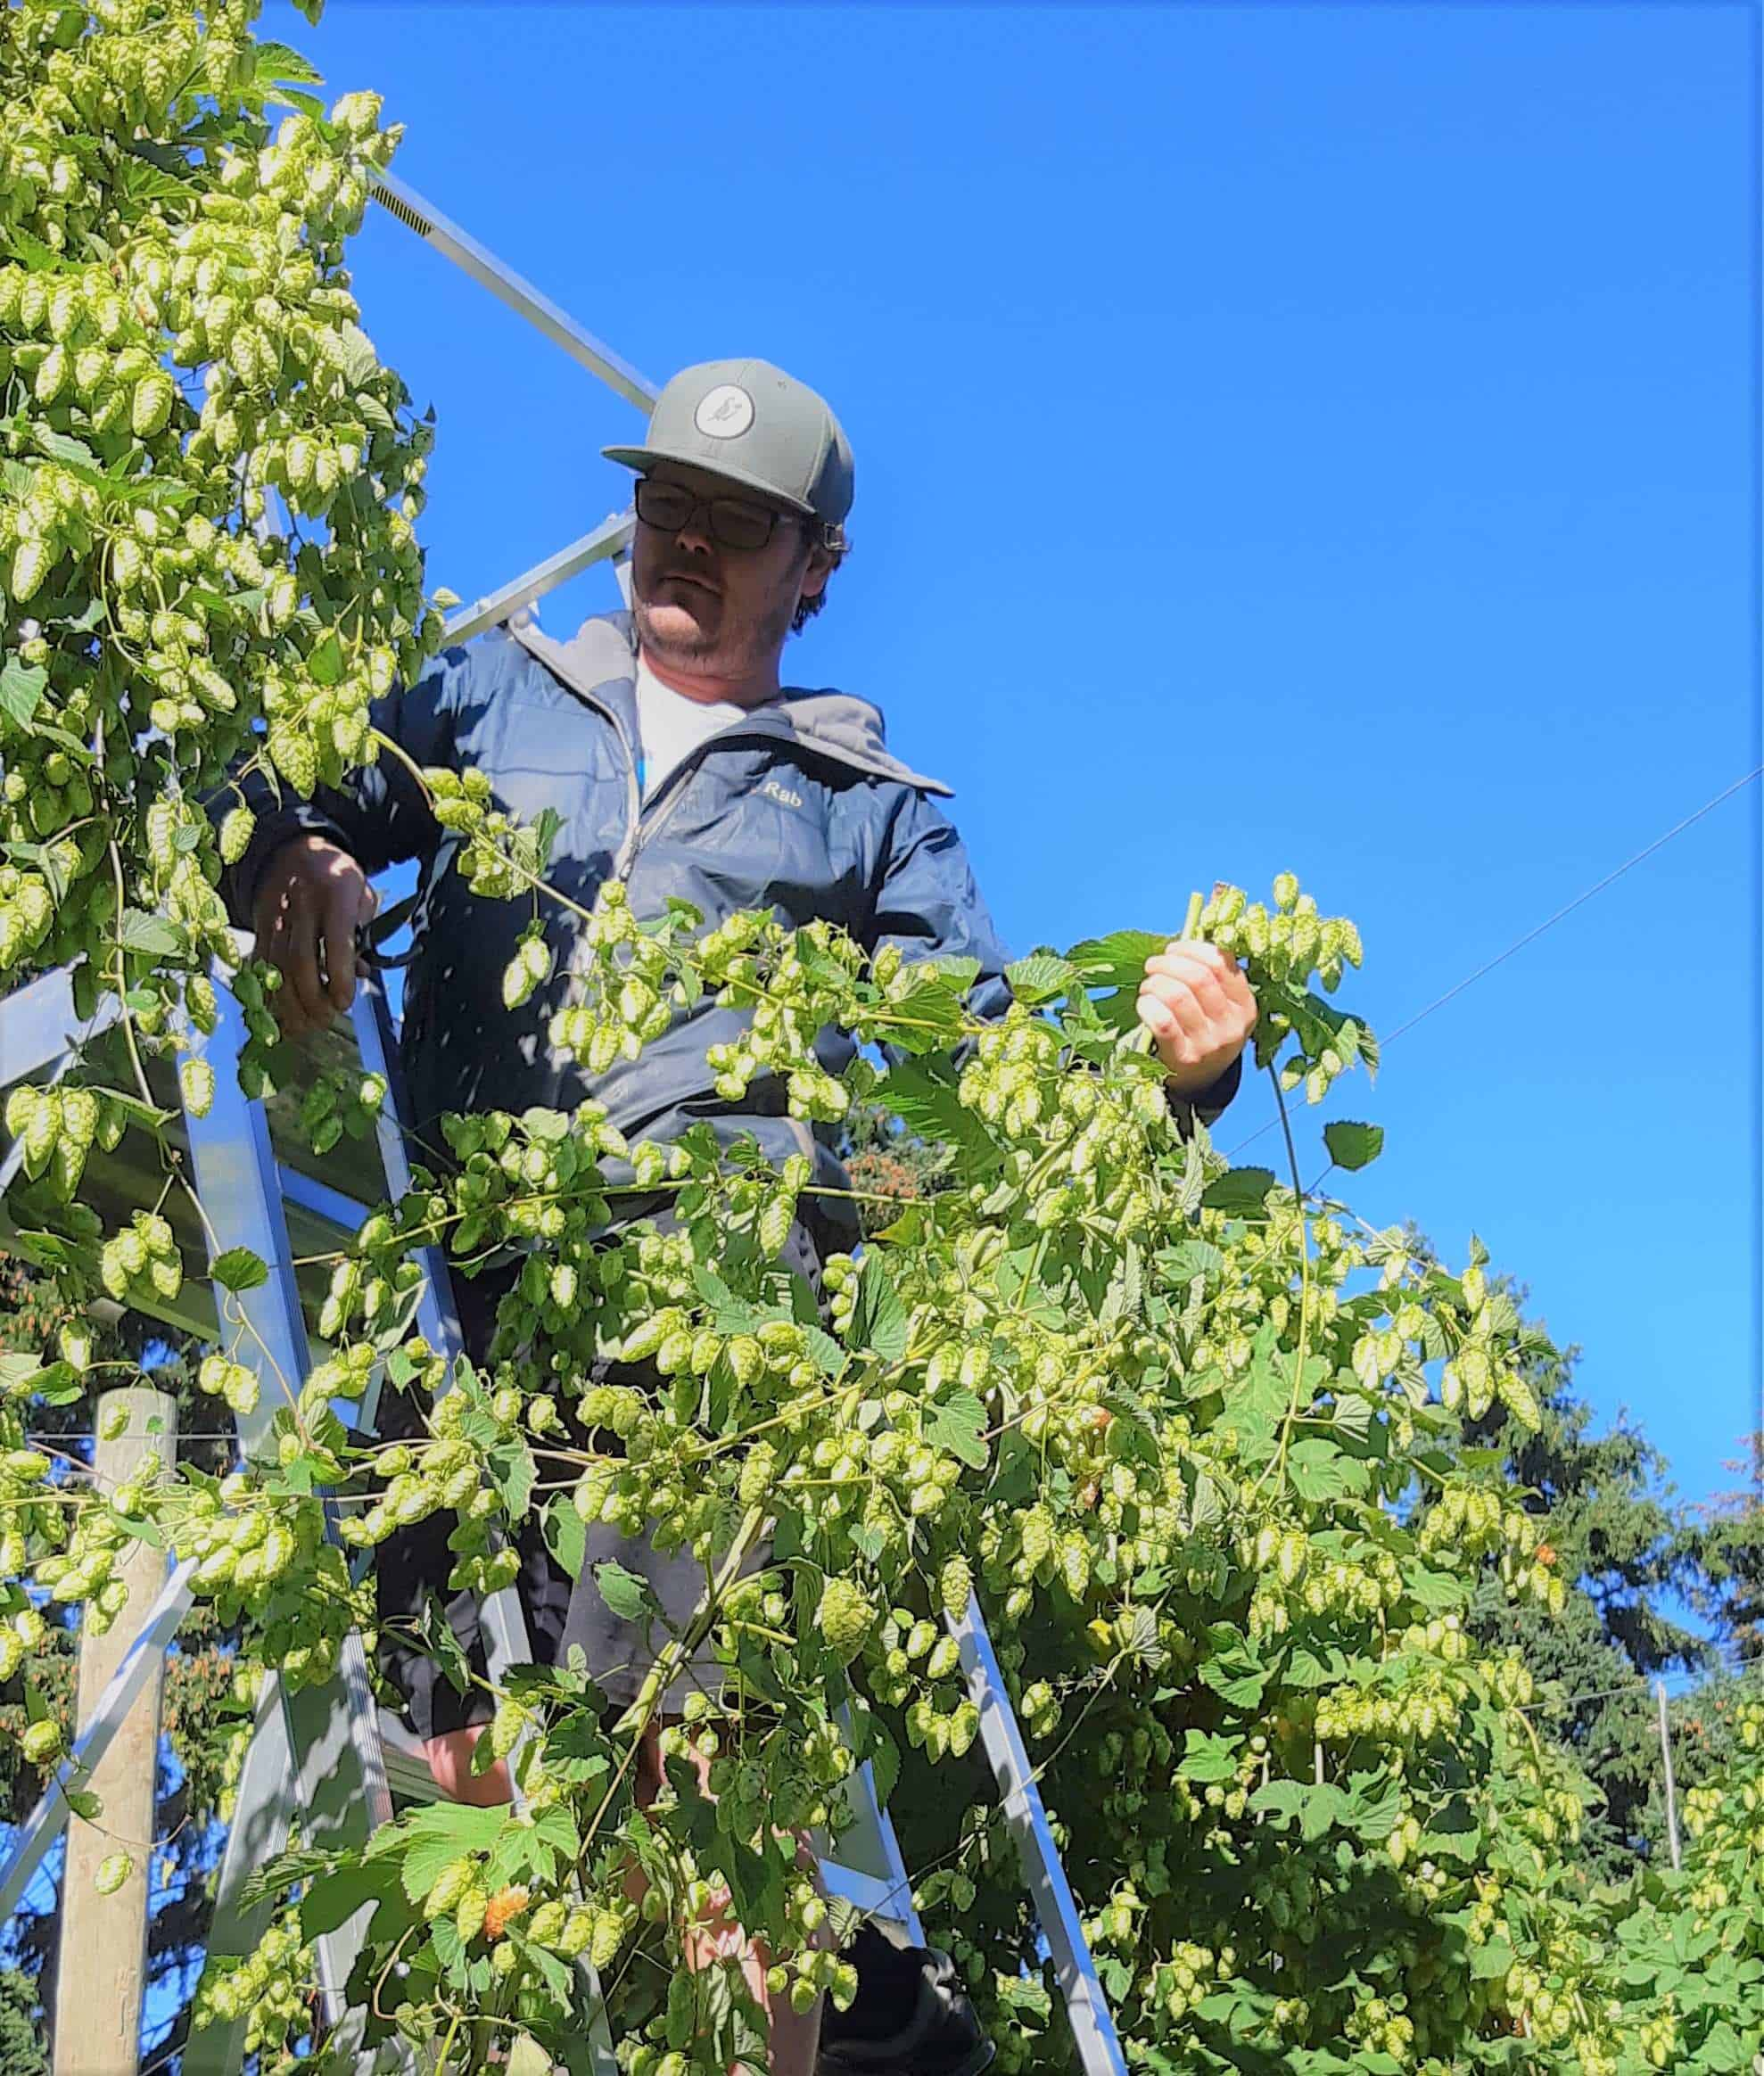 At the top of the ladder, Eliott cuts the first hop vine.